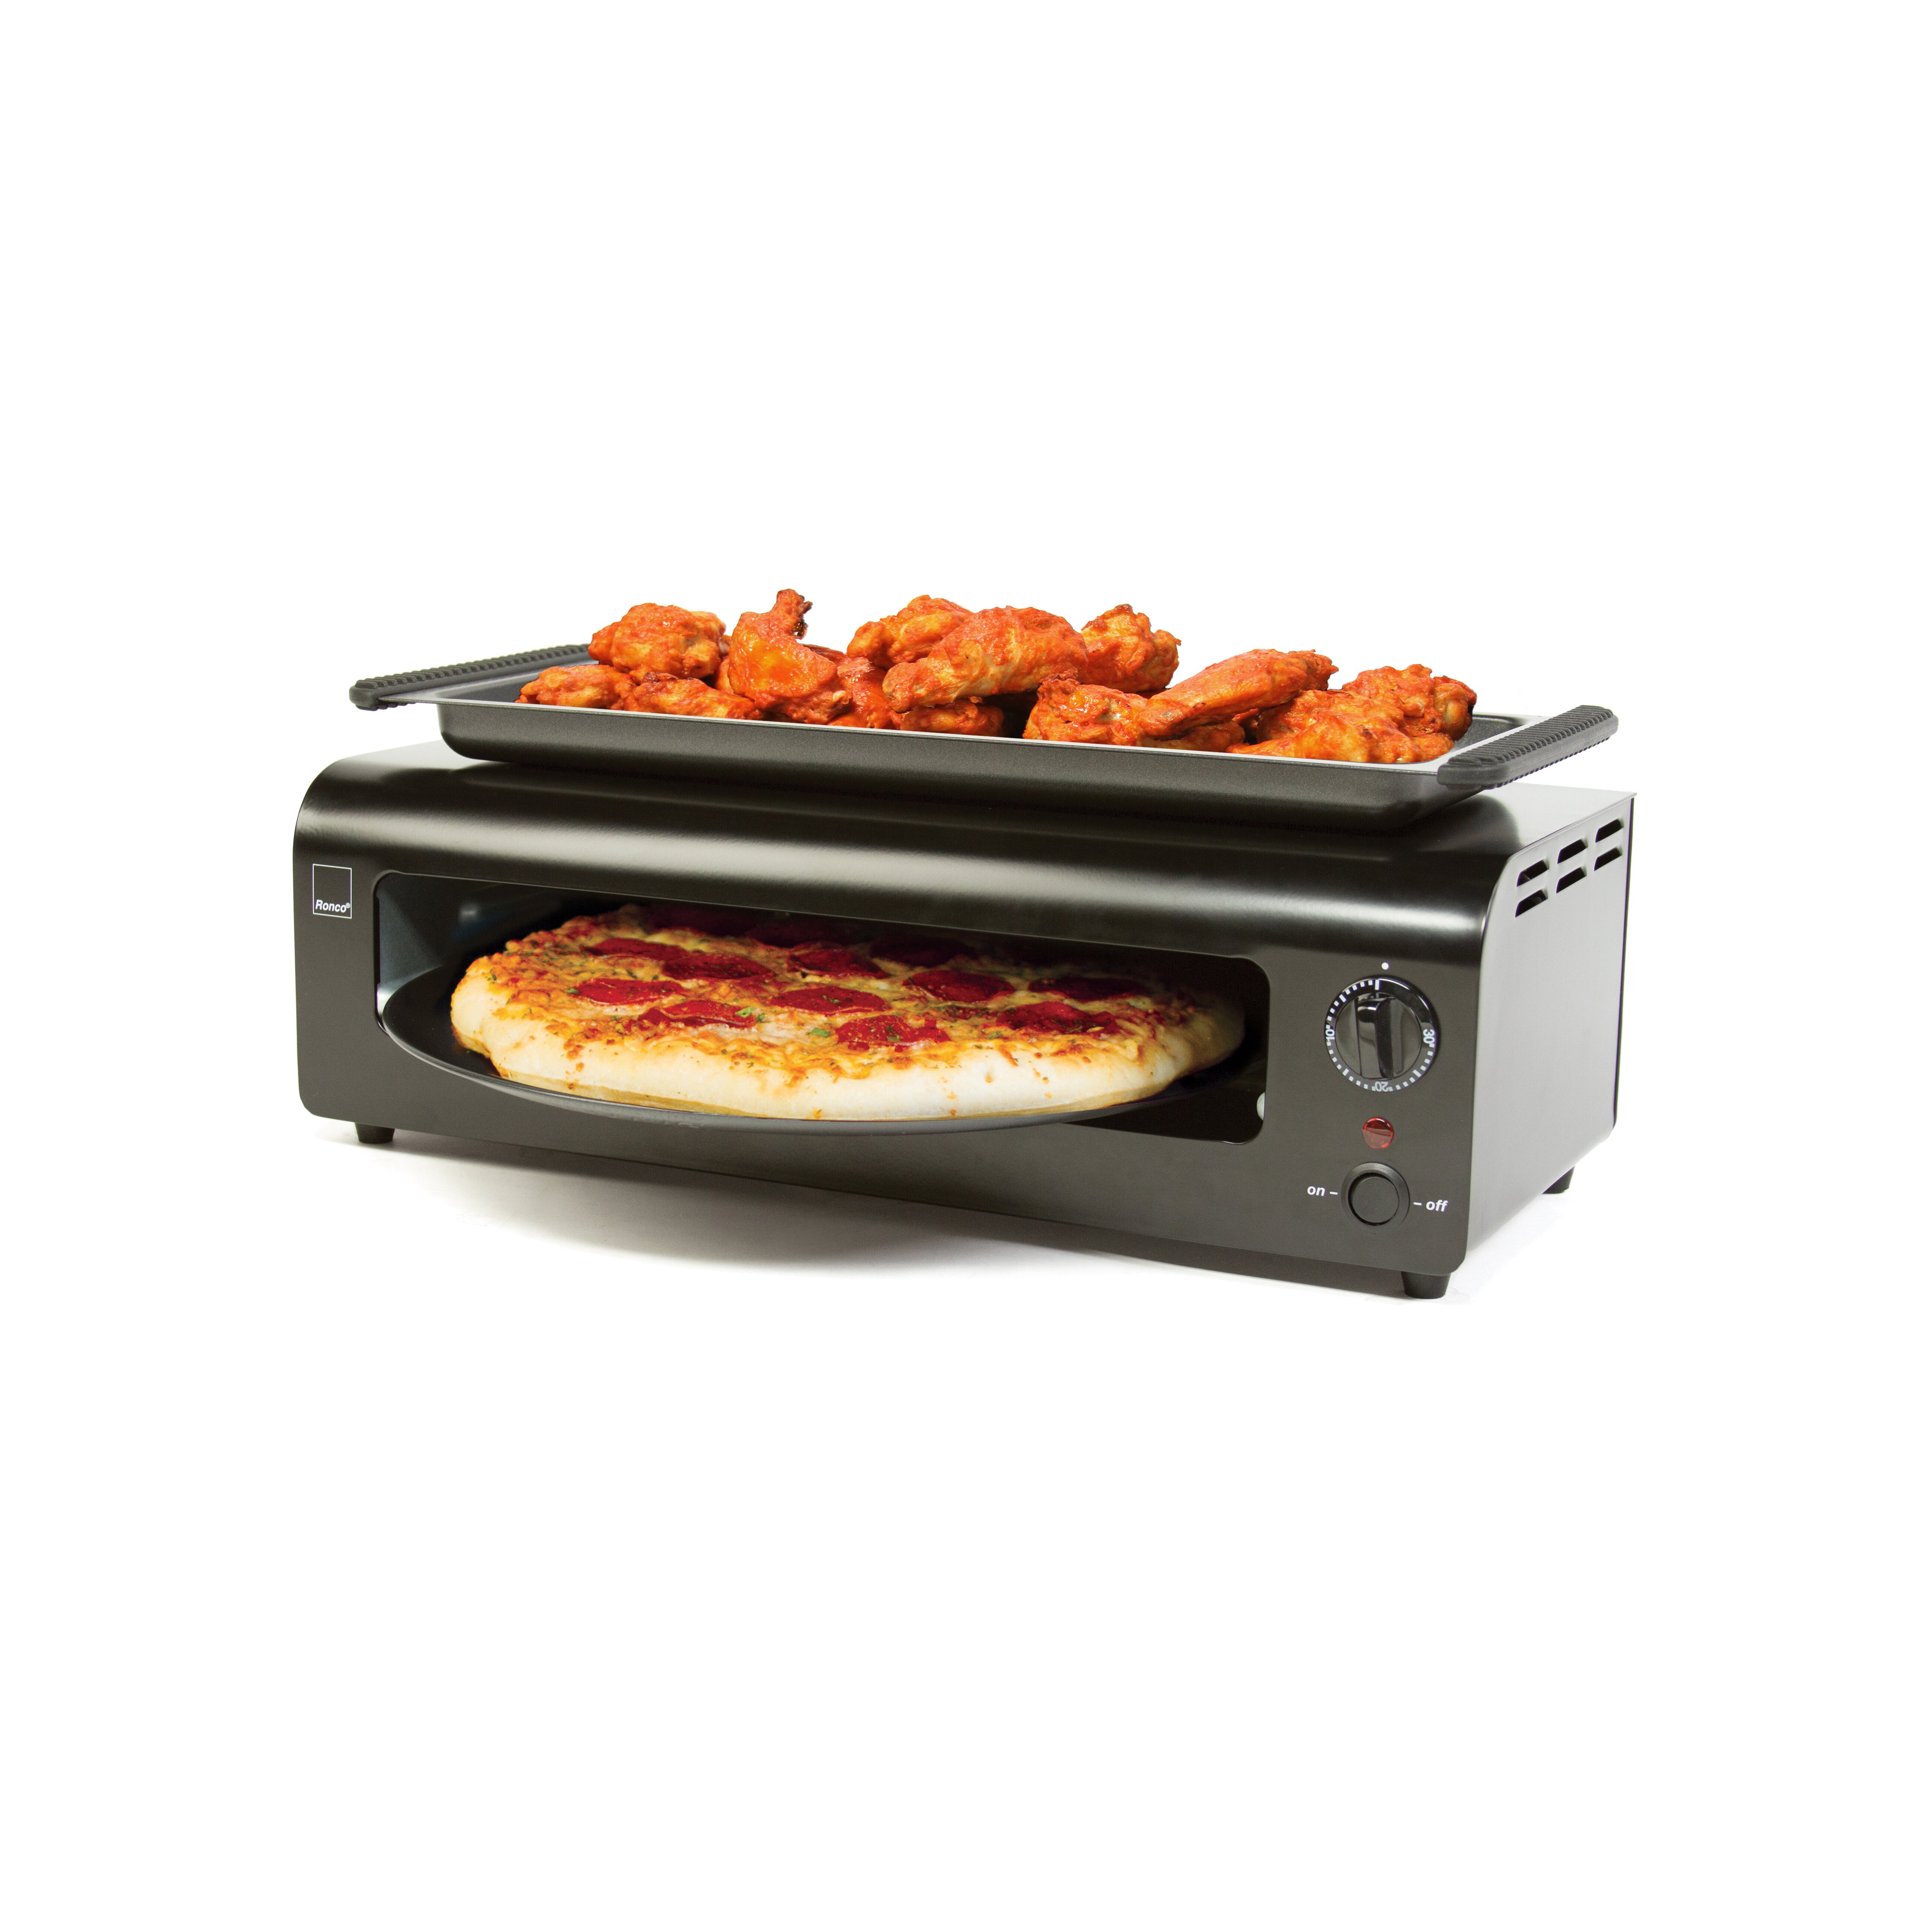 Ronco Pizza and More Toaster Oven & Reviews Wayfair